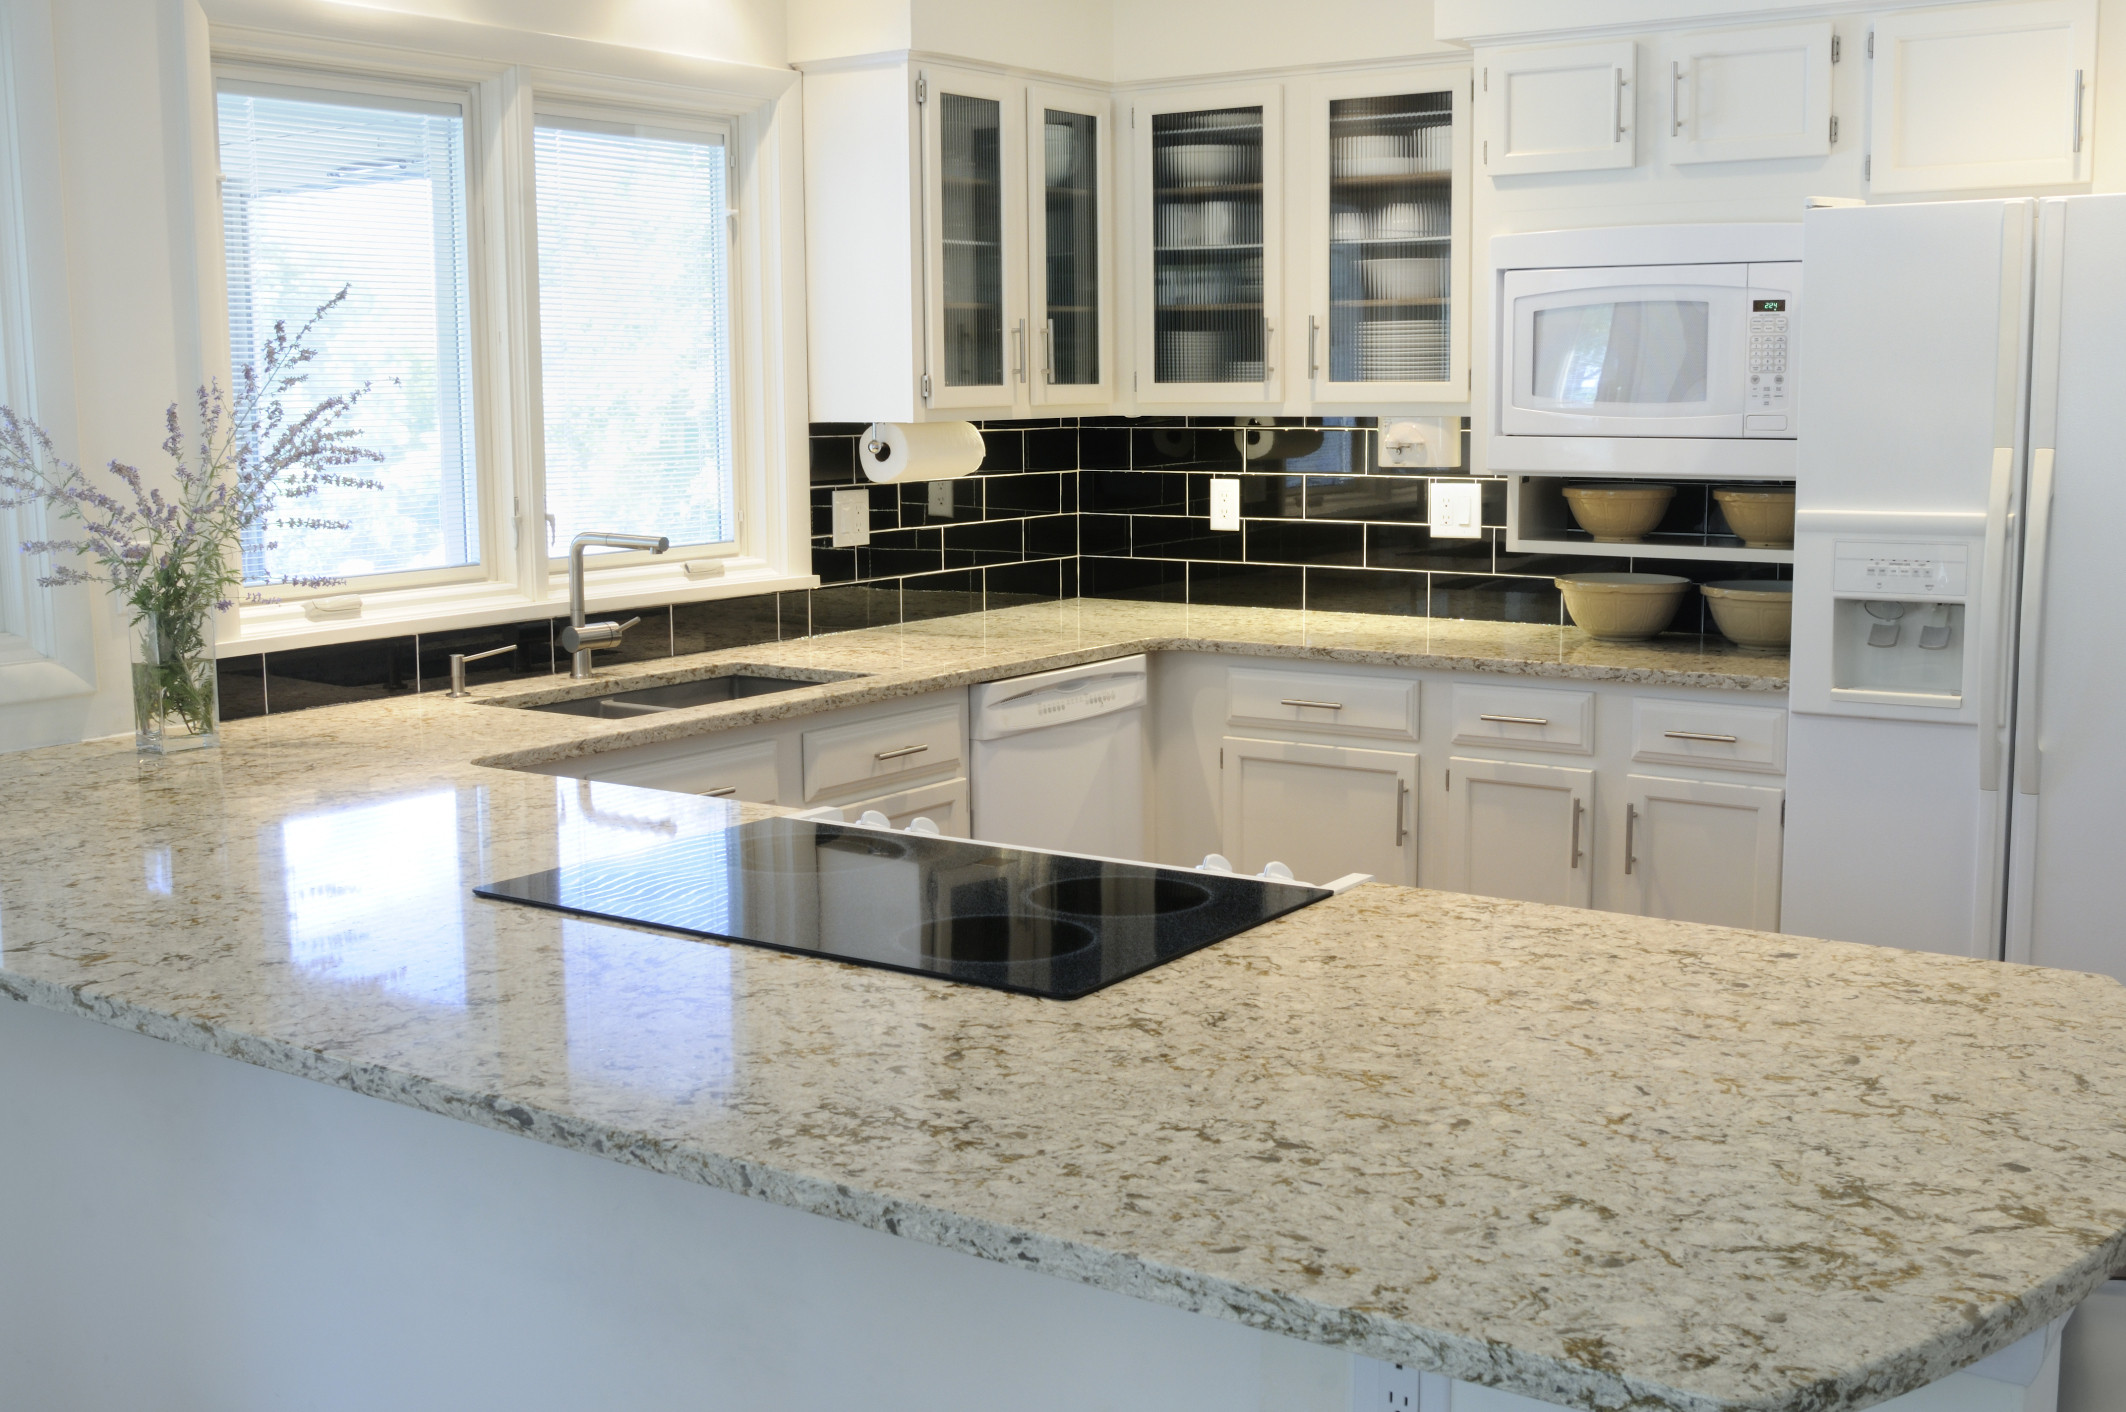 Granite Kitchen Work Tops 10 Reasons To Let Go Of The Granite Obsession Already Huffpost